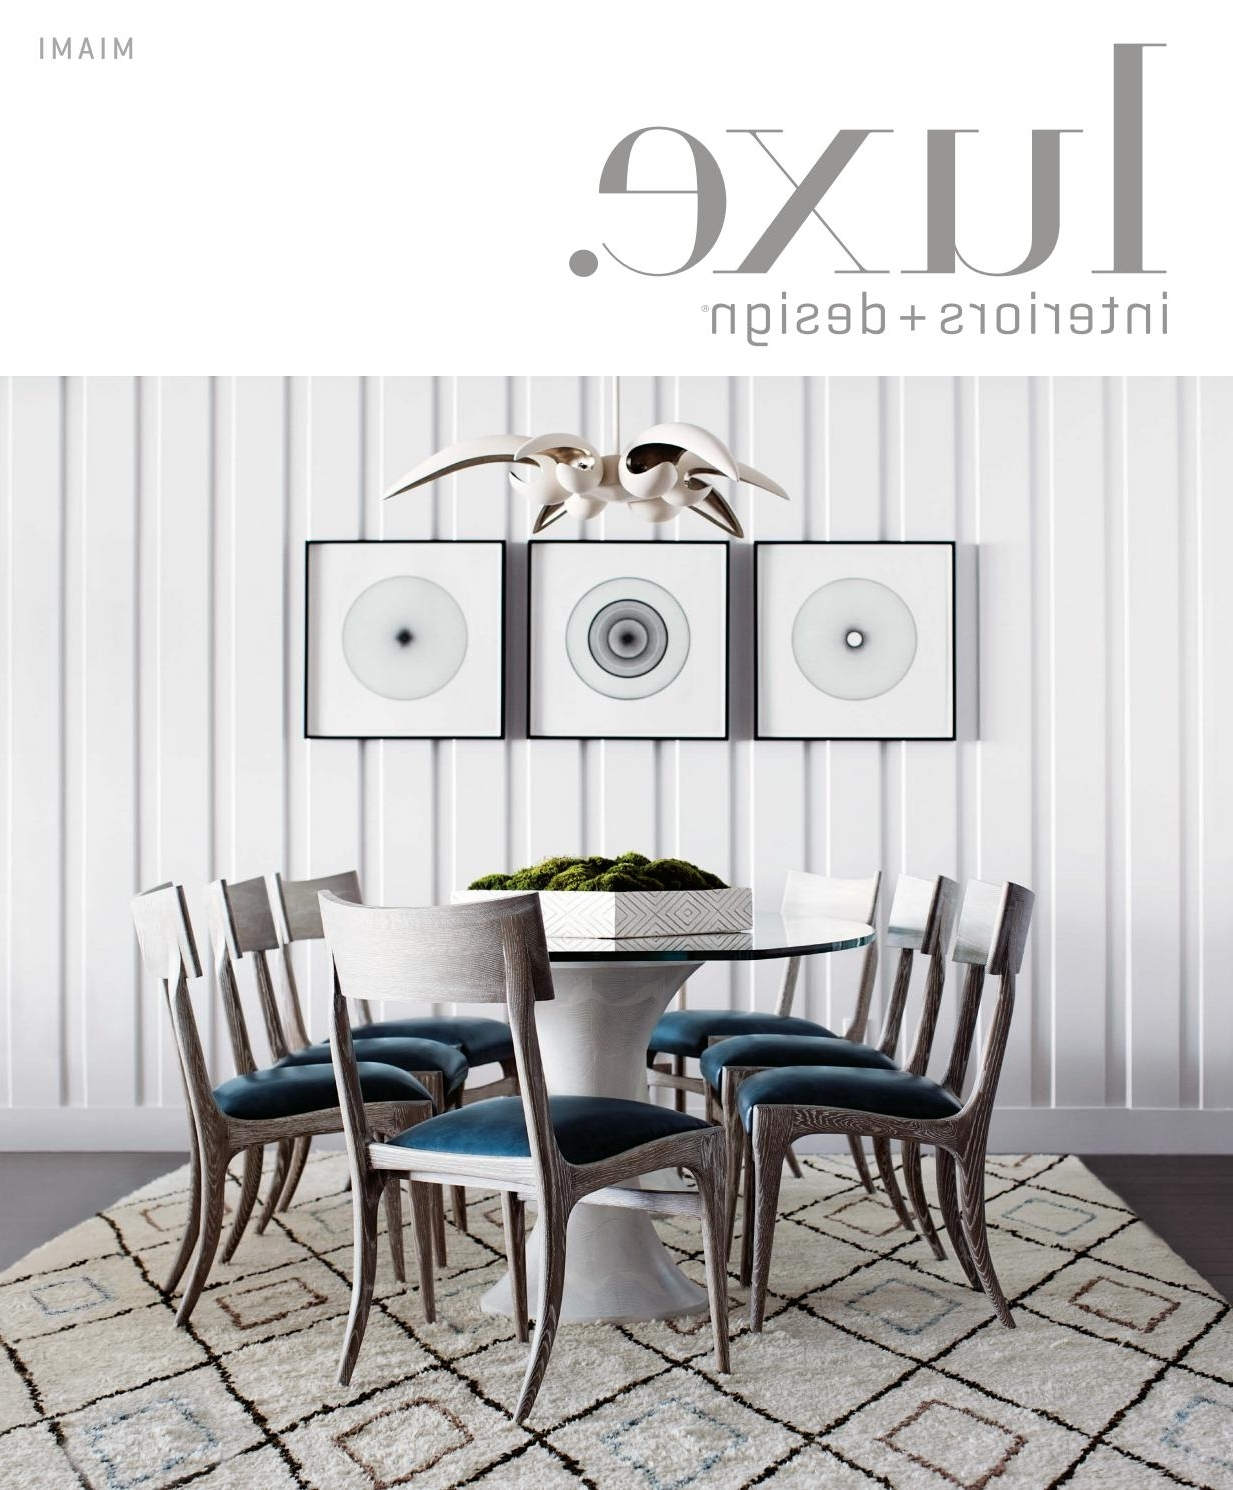 Luxe Magazine July 2016 Miamisandow® – Issuu Inside Widely Used Palazzo 7 Piece Dining Sets With Pearson White Side Chairs (View 20 of 25)